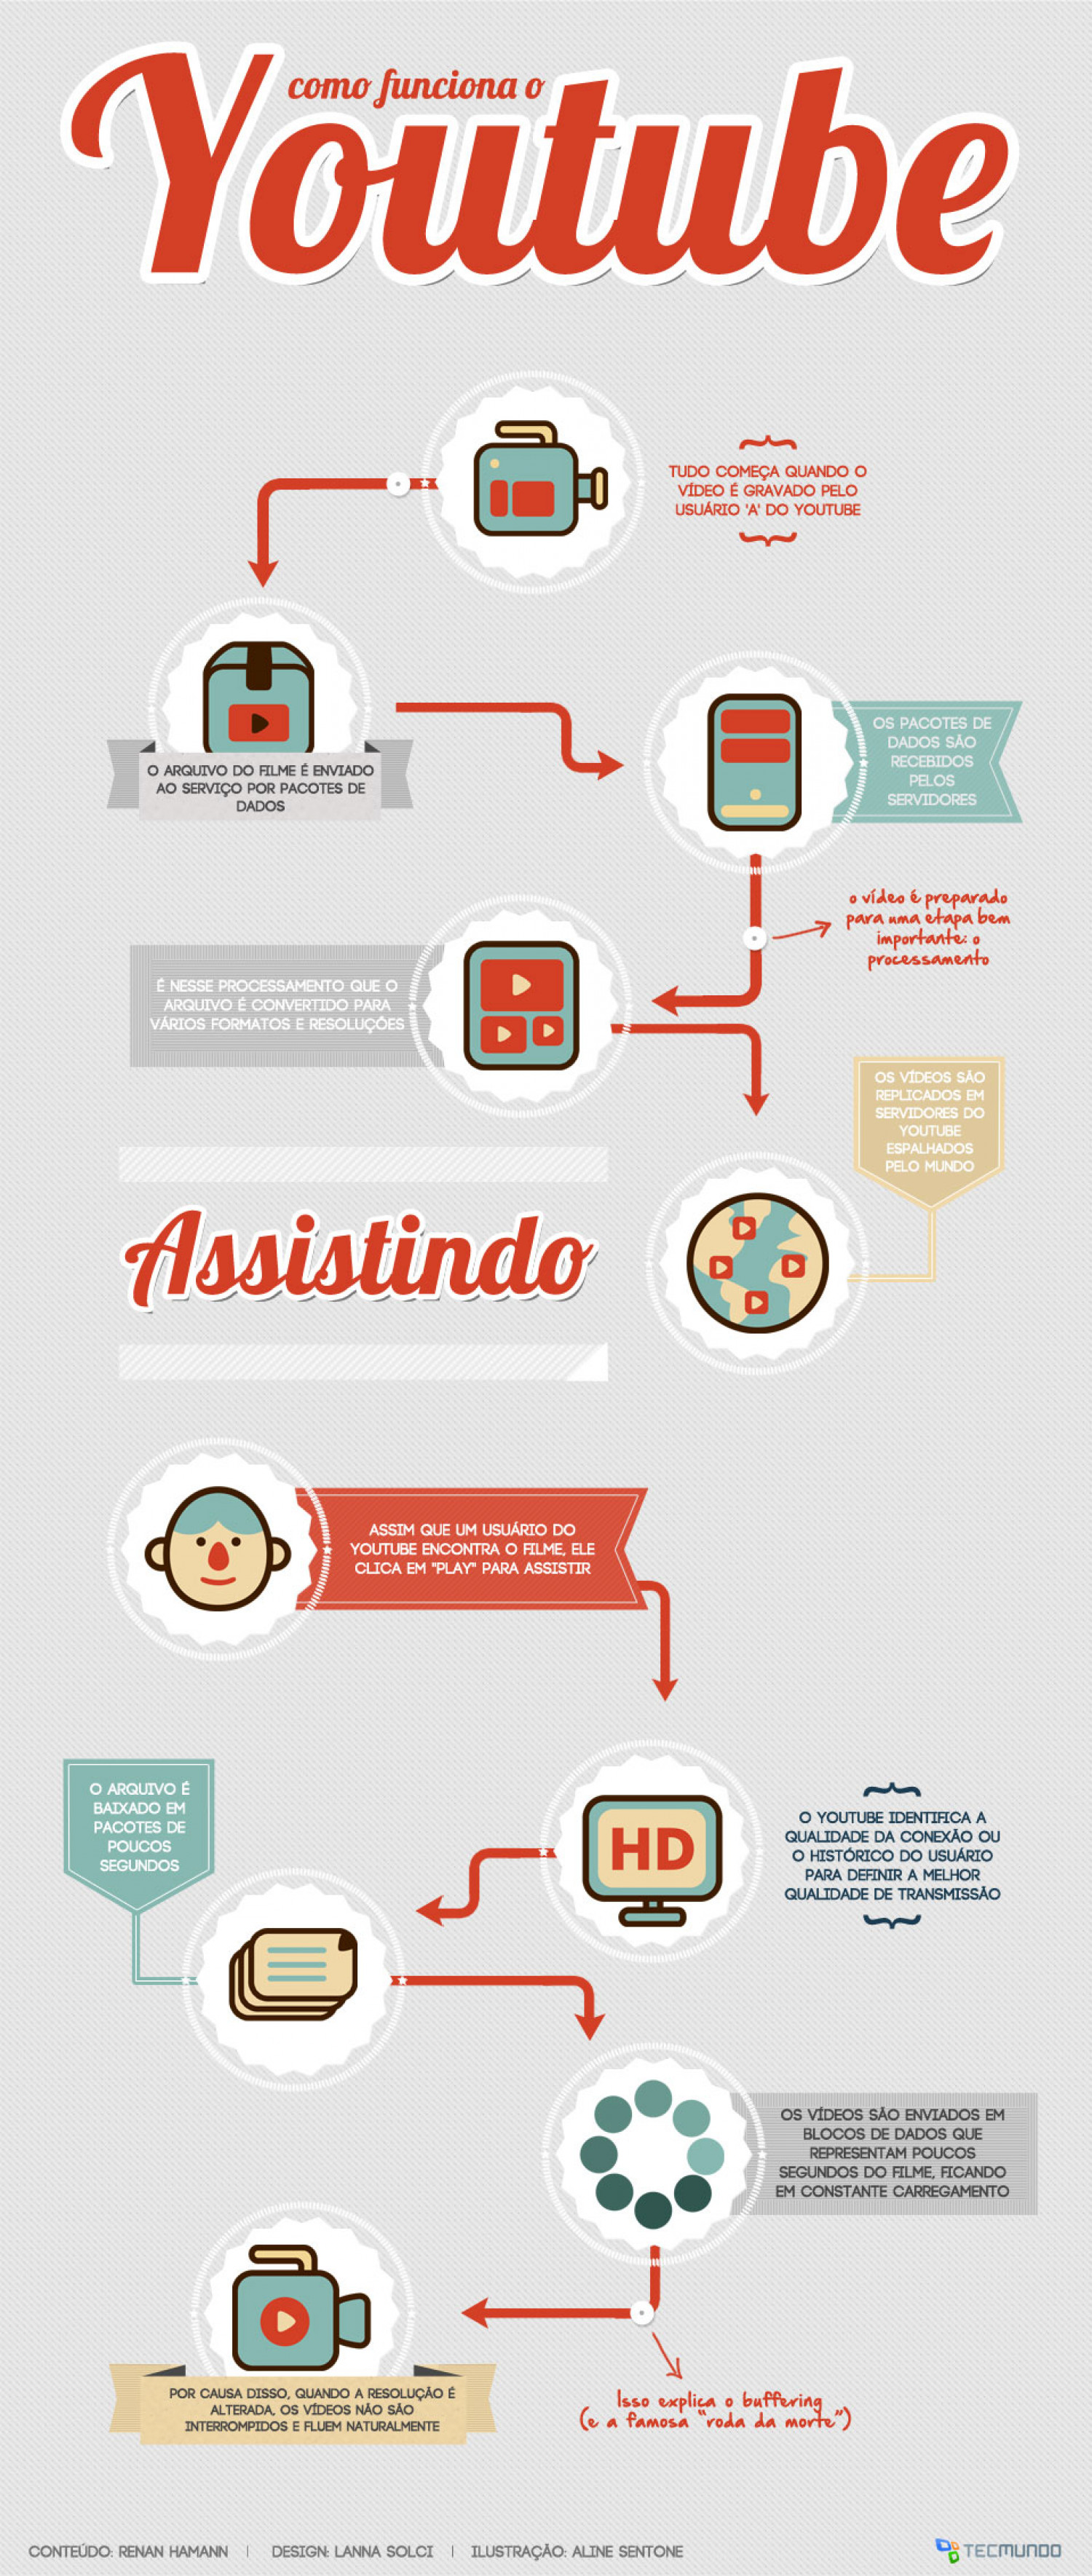 Youtube: How it works? Infographic